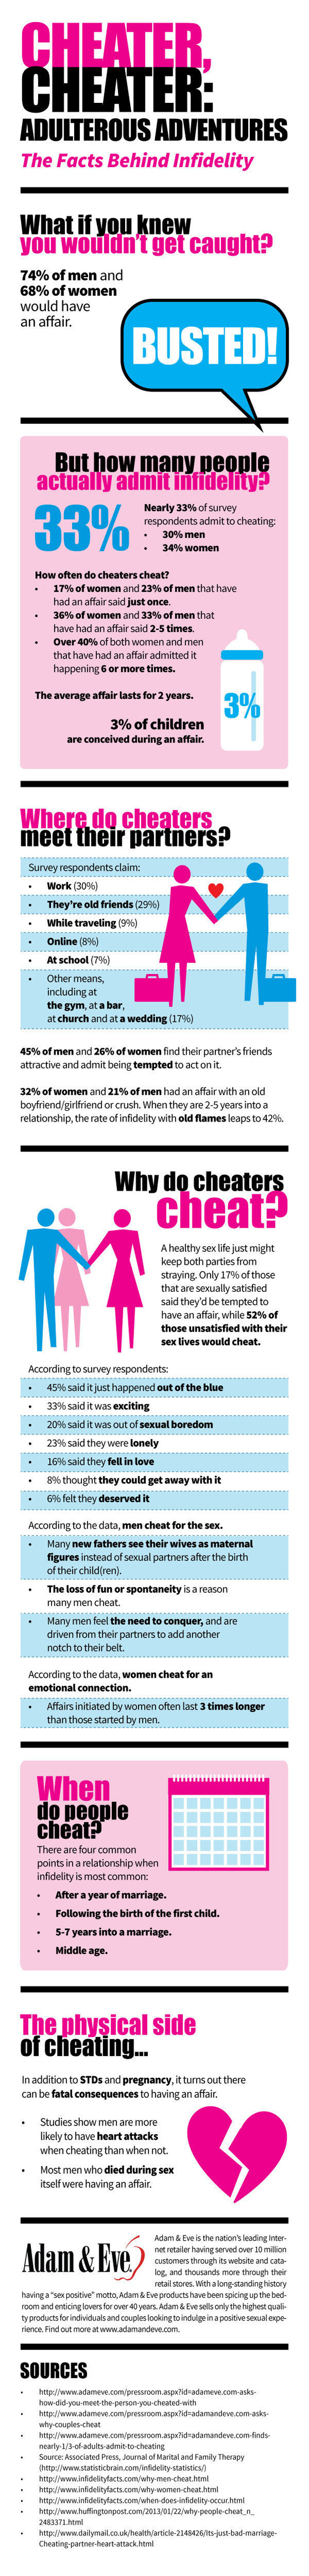 Facts behind Infidelity